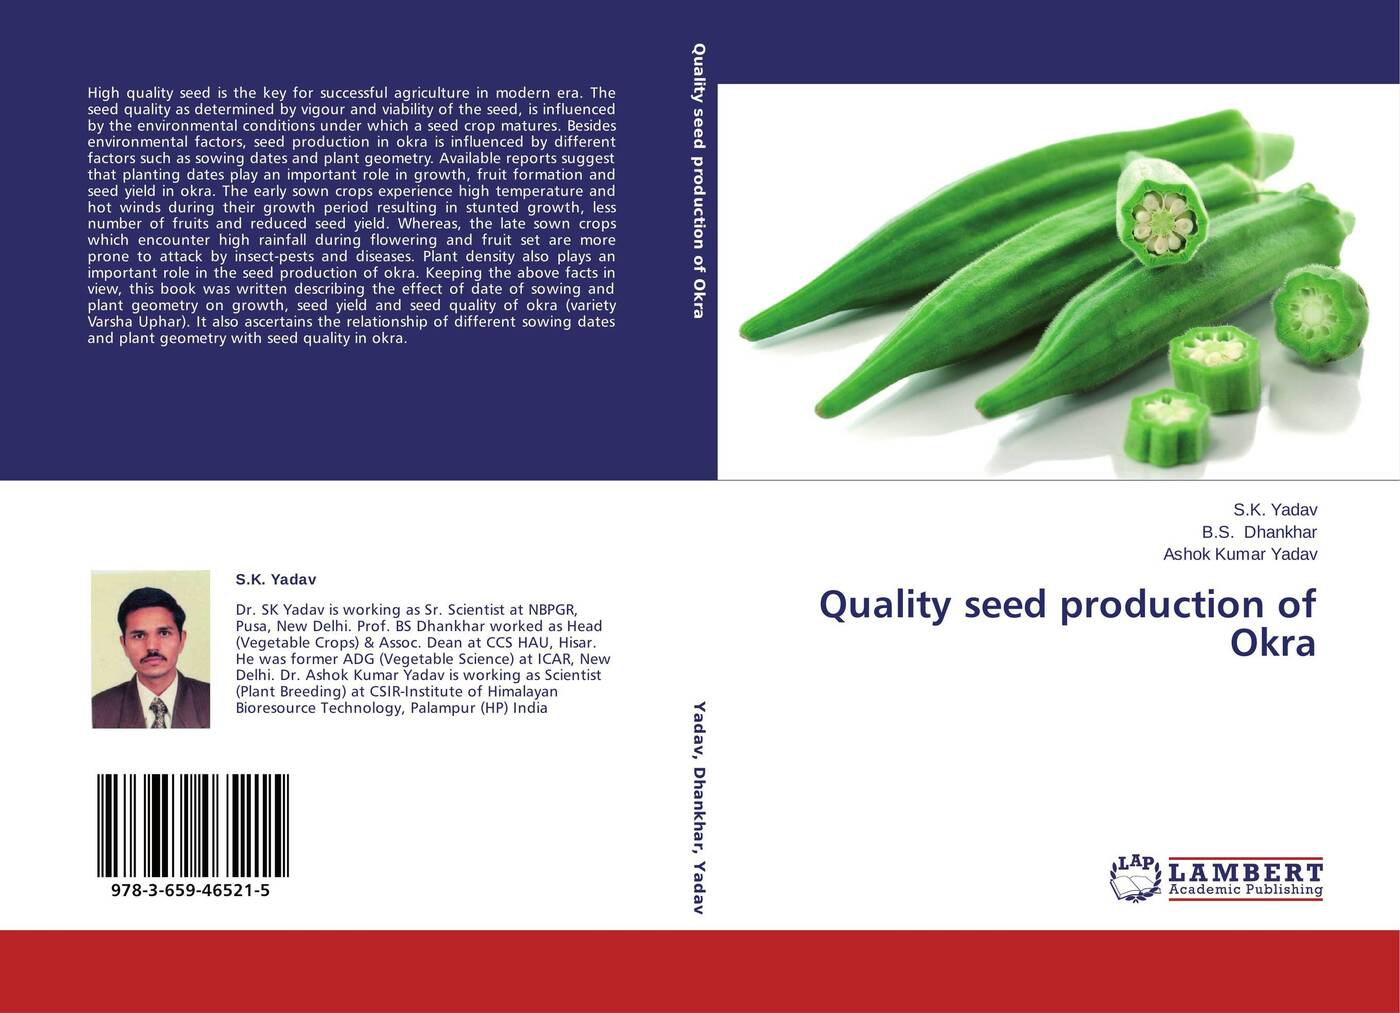 S.K. Yadav,B.S. Dhankhar and Ashok Kumar Yadav Quality seed production of Okra